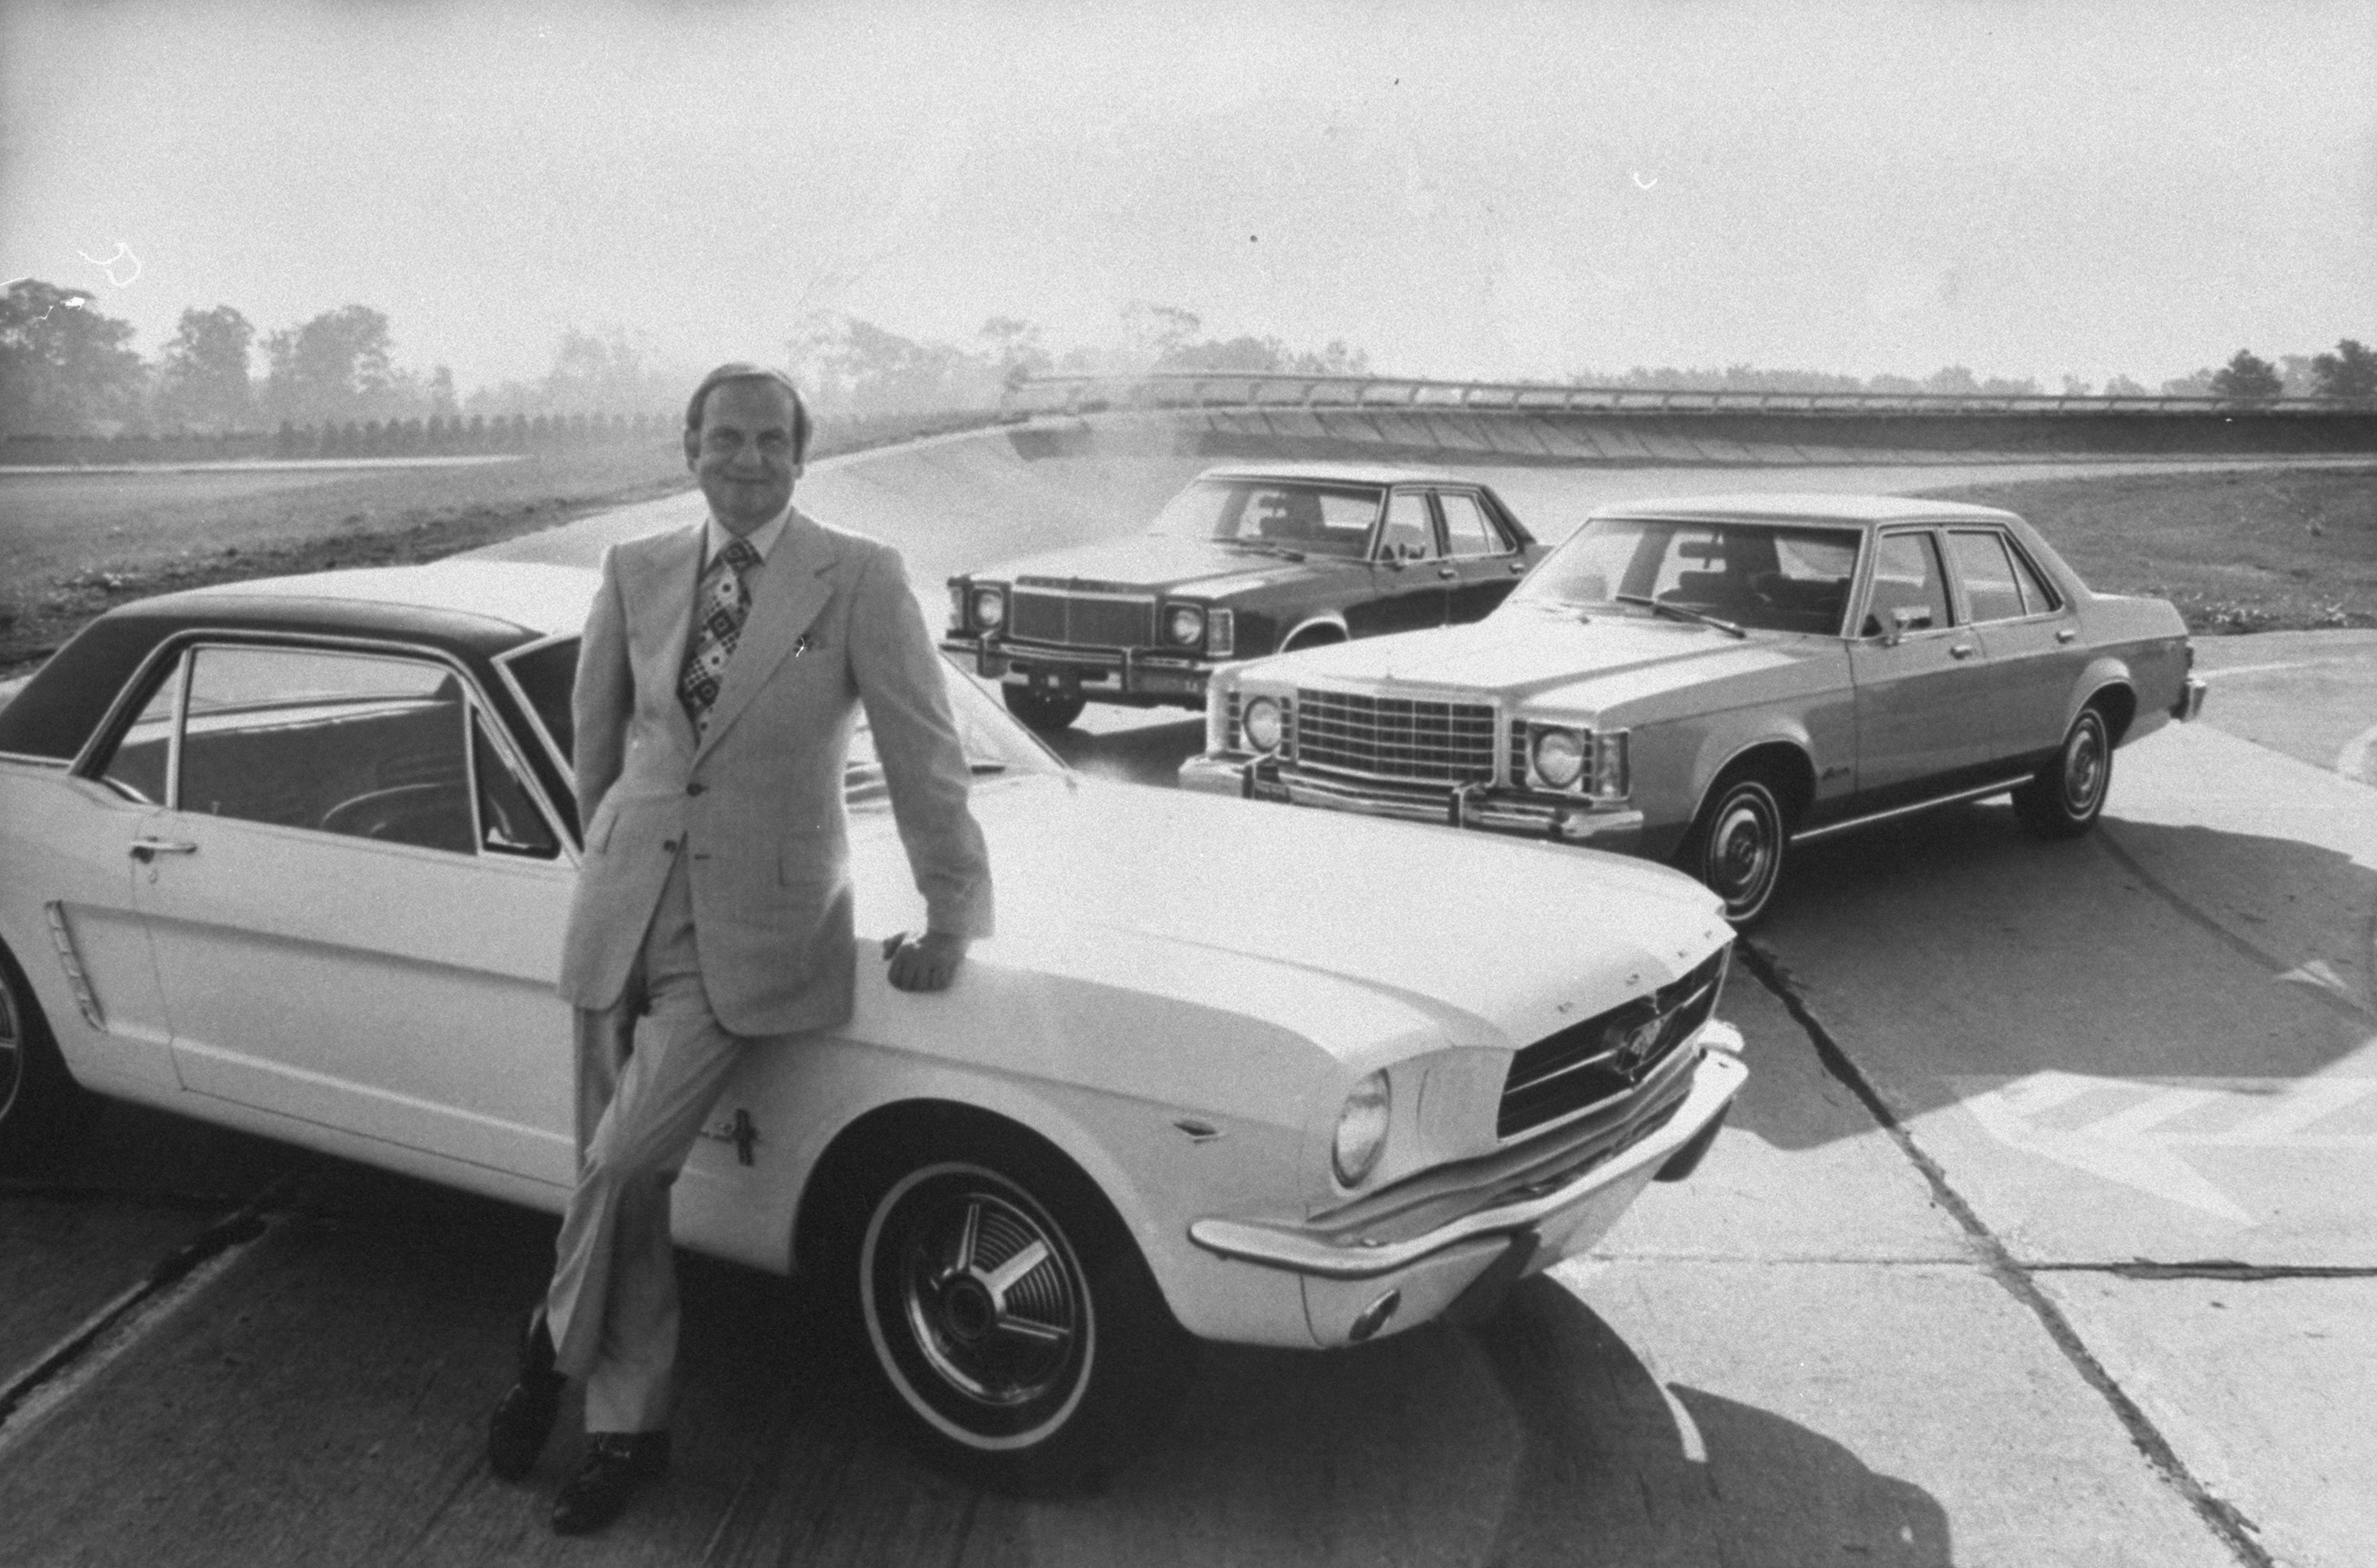 Ford Motor Co. president Lee A. Iacocca, leaning against a Ford Mustang in January 1974.